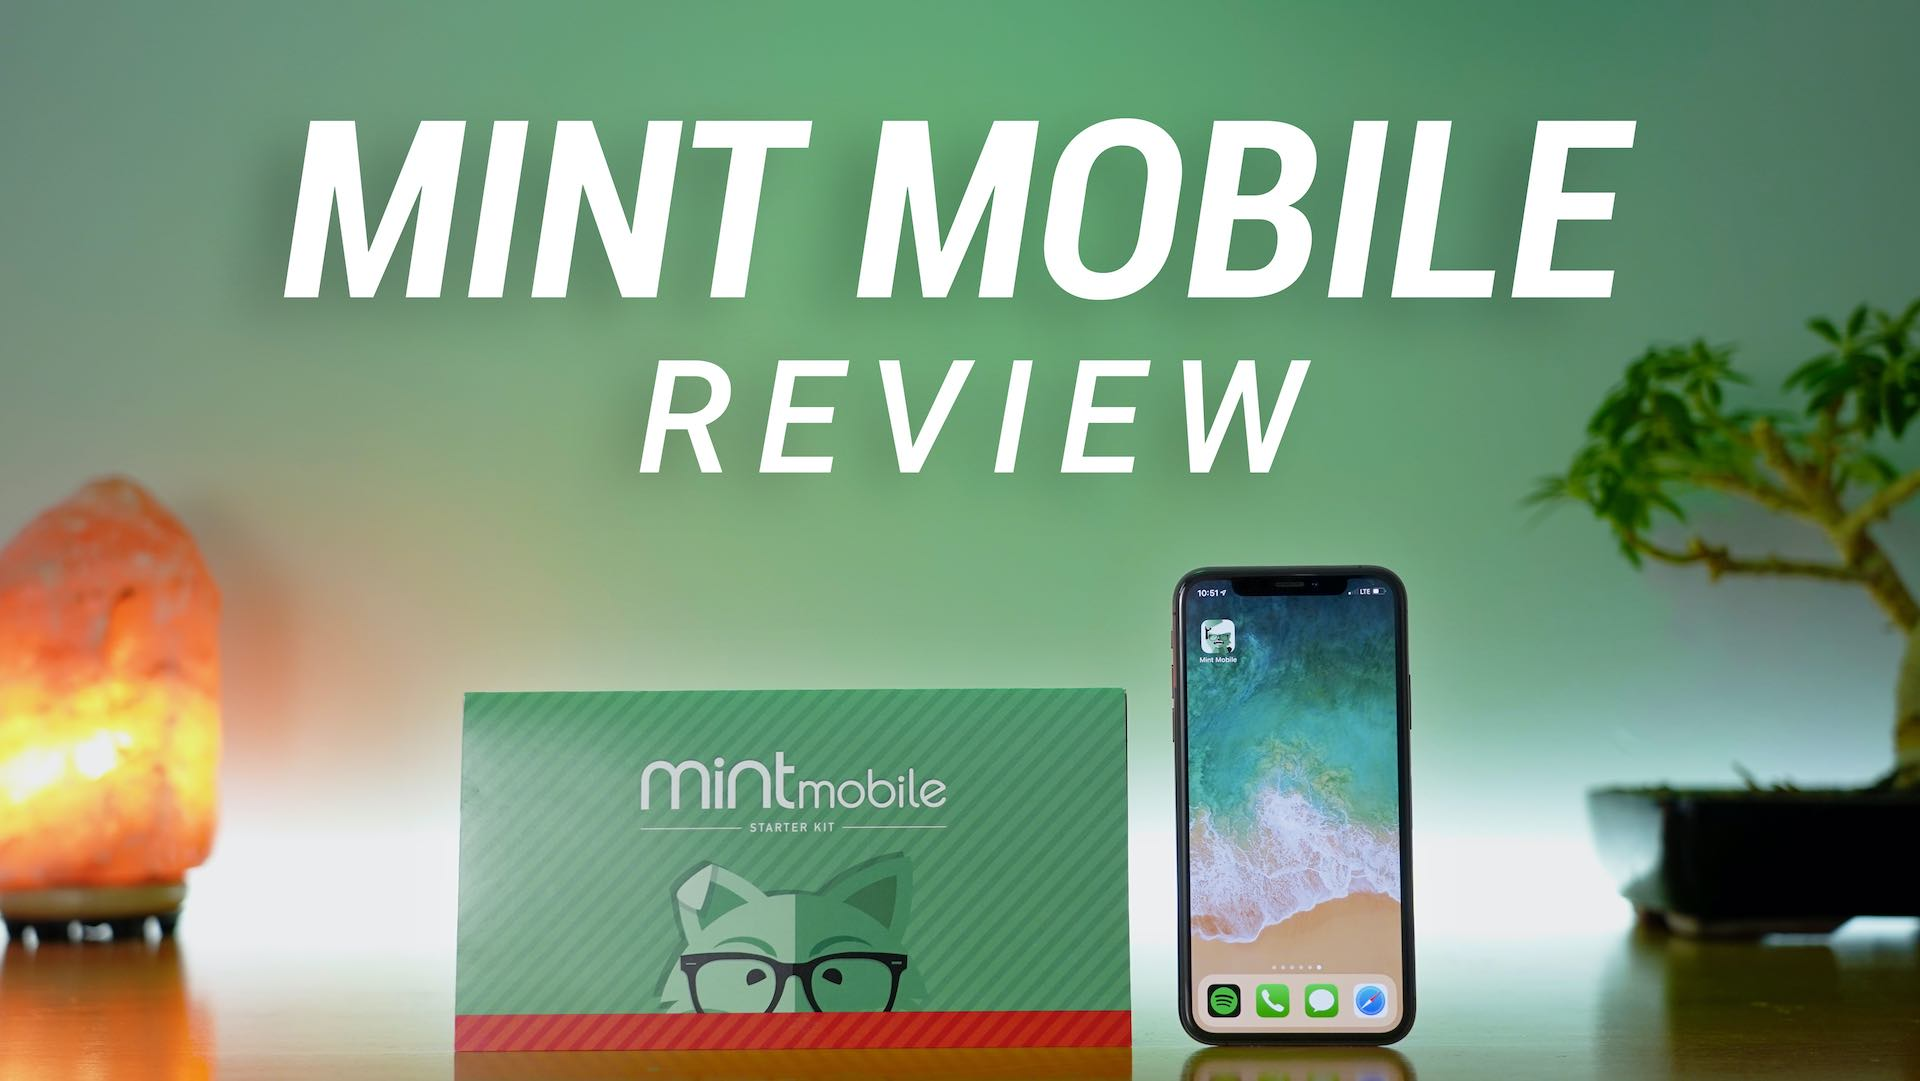 mint mobile sim starter kit next to iphone